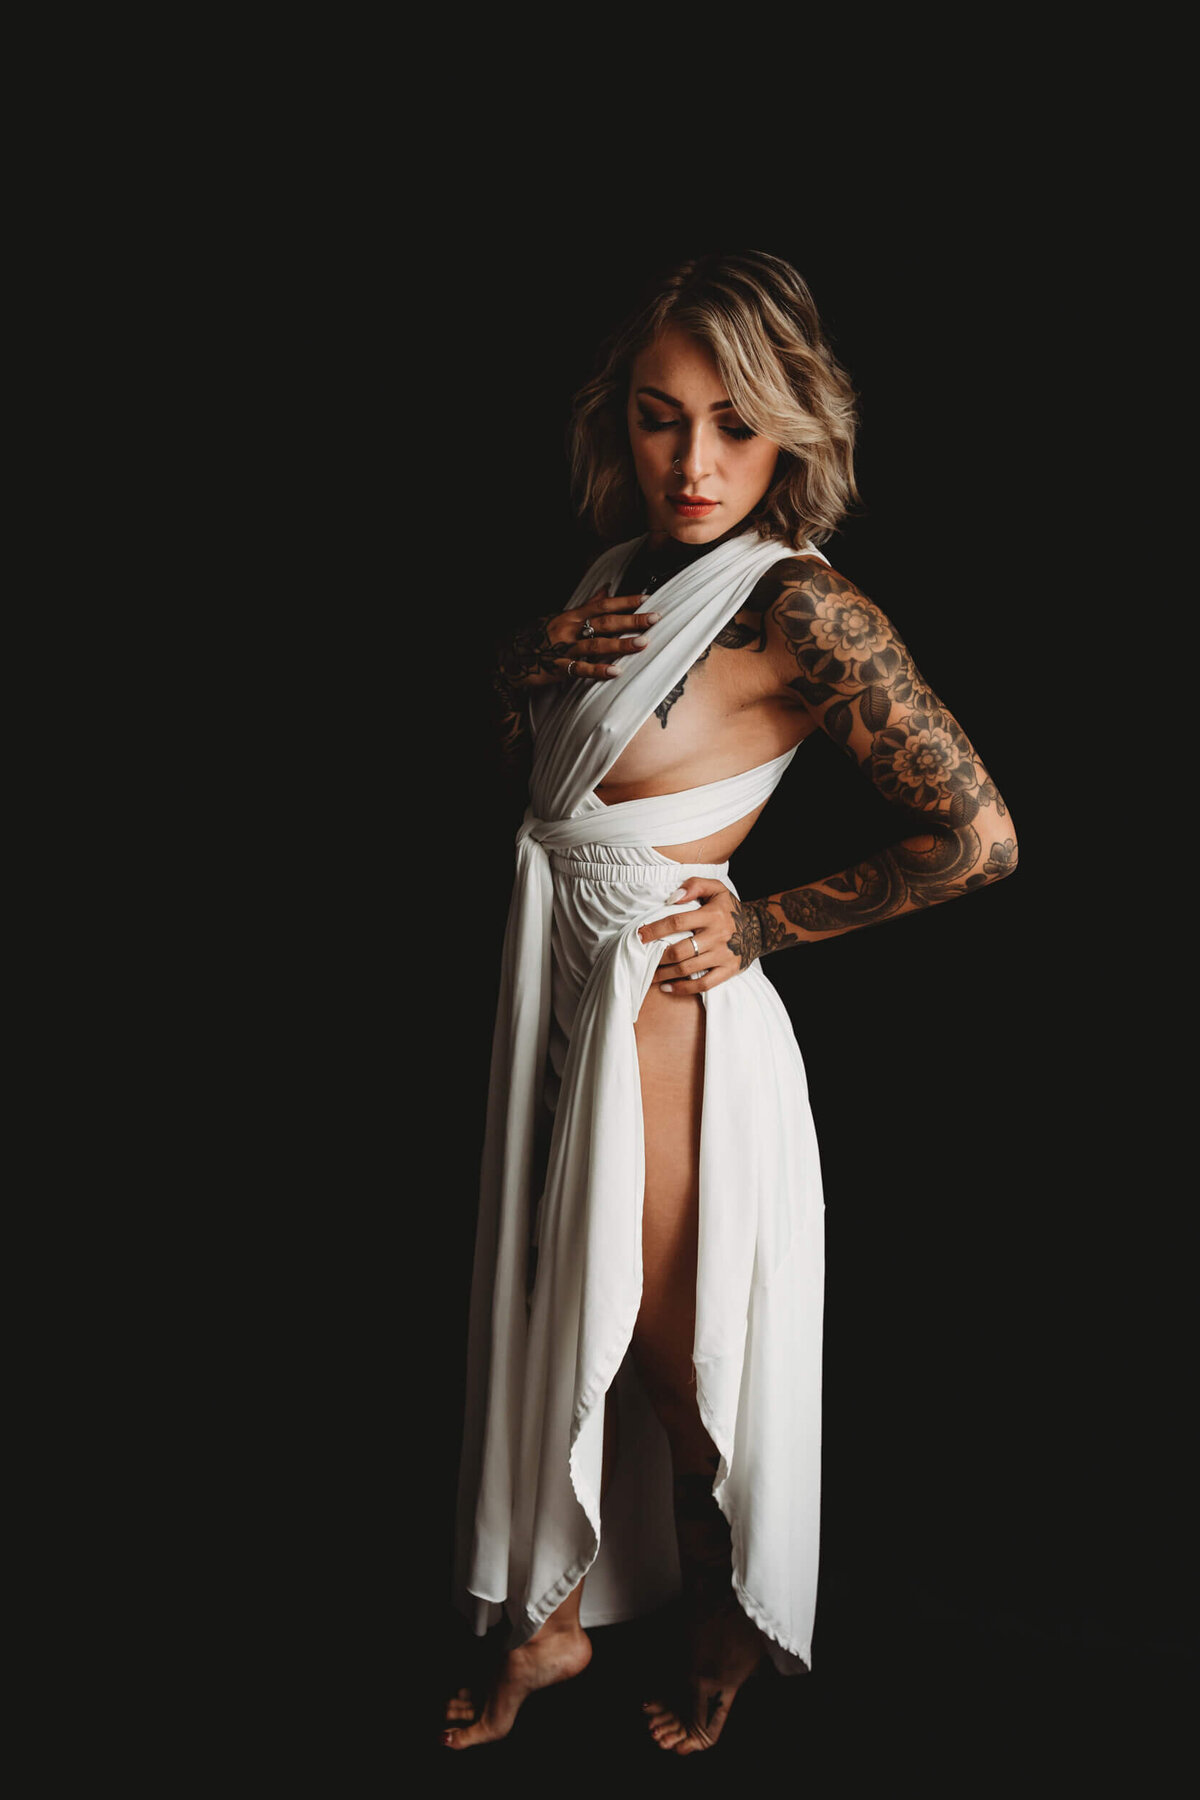 Kansas City Boudoir Photographer lastphotokc-26